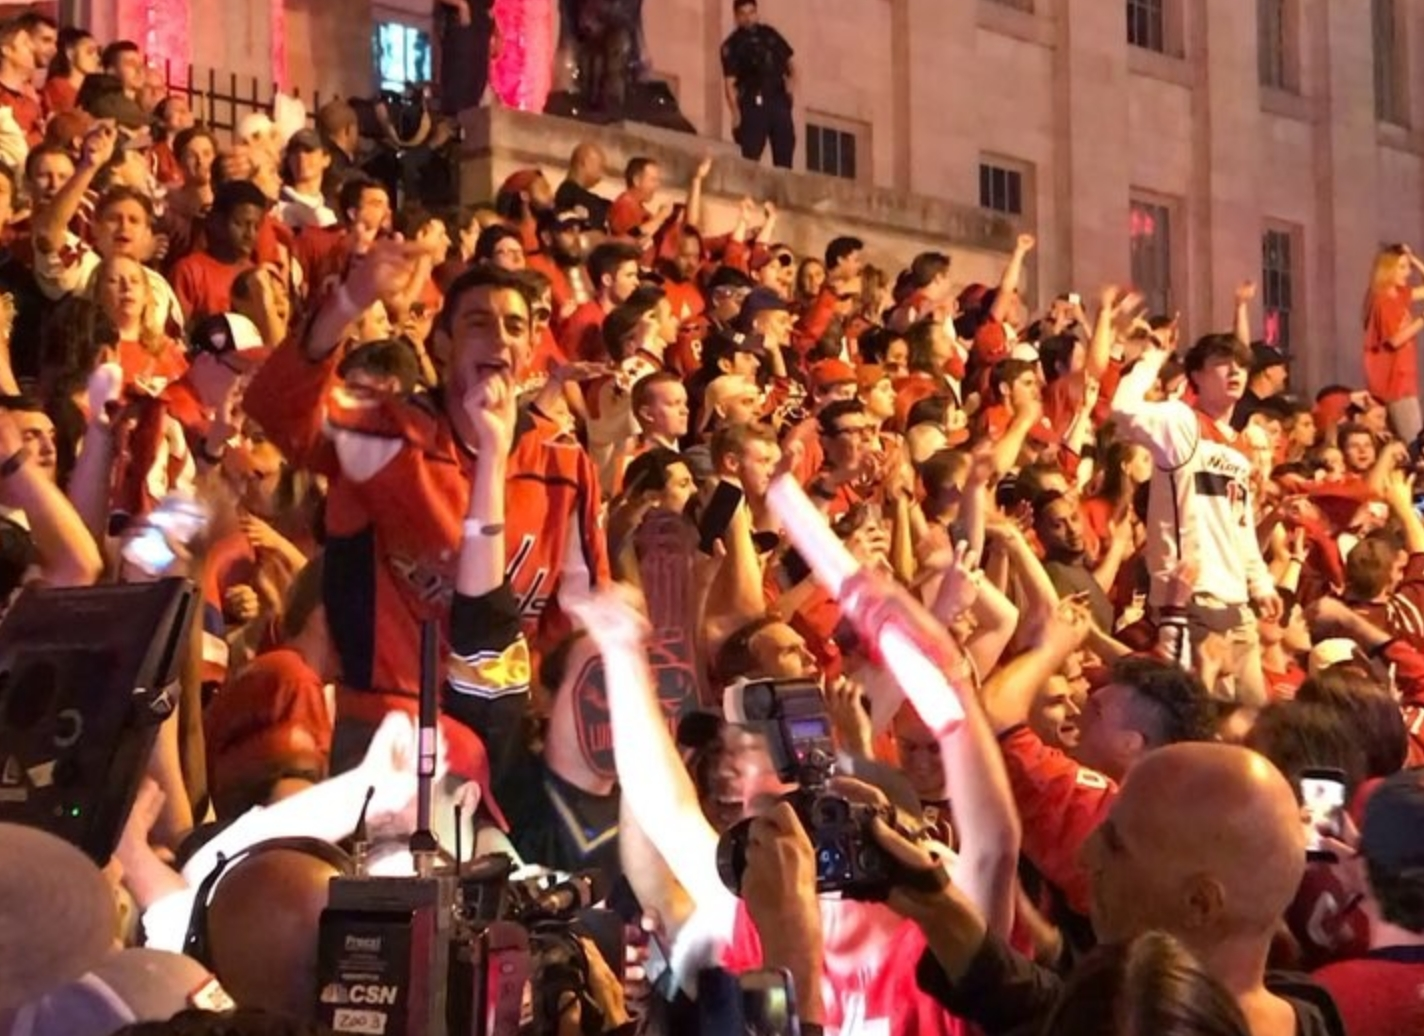 Caps Fans Back in the Streets Celebrating Game 4 Win